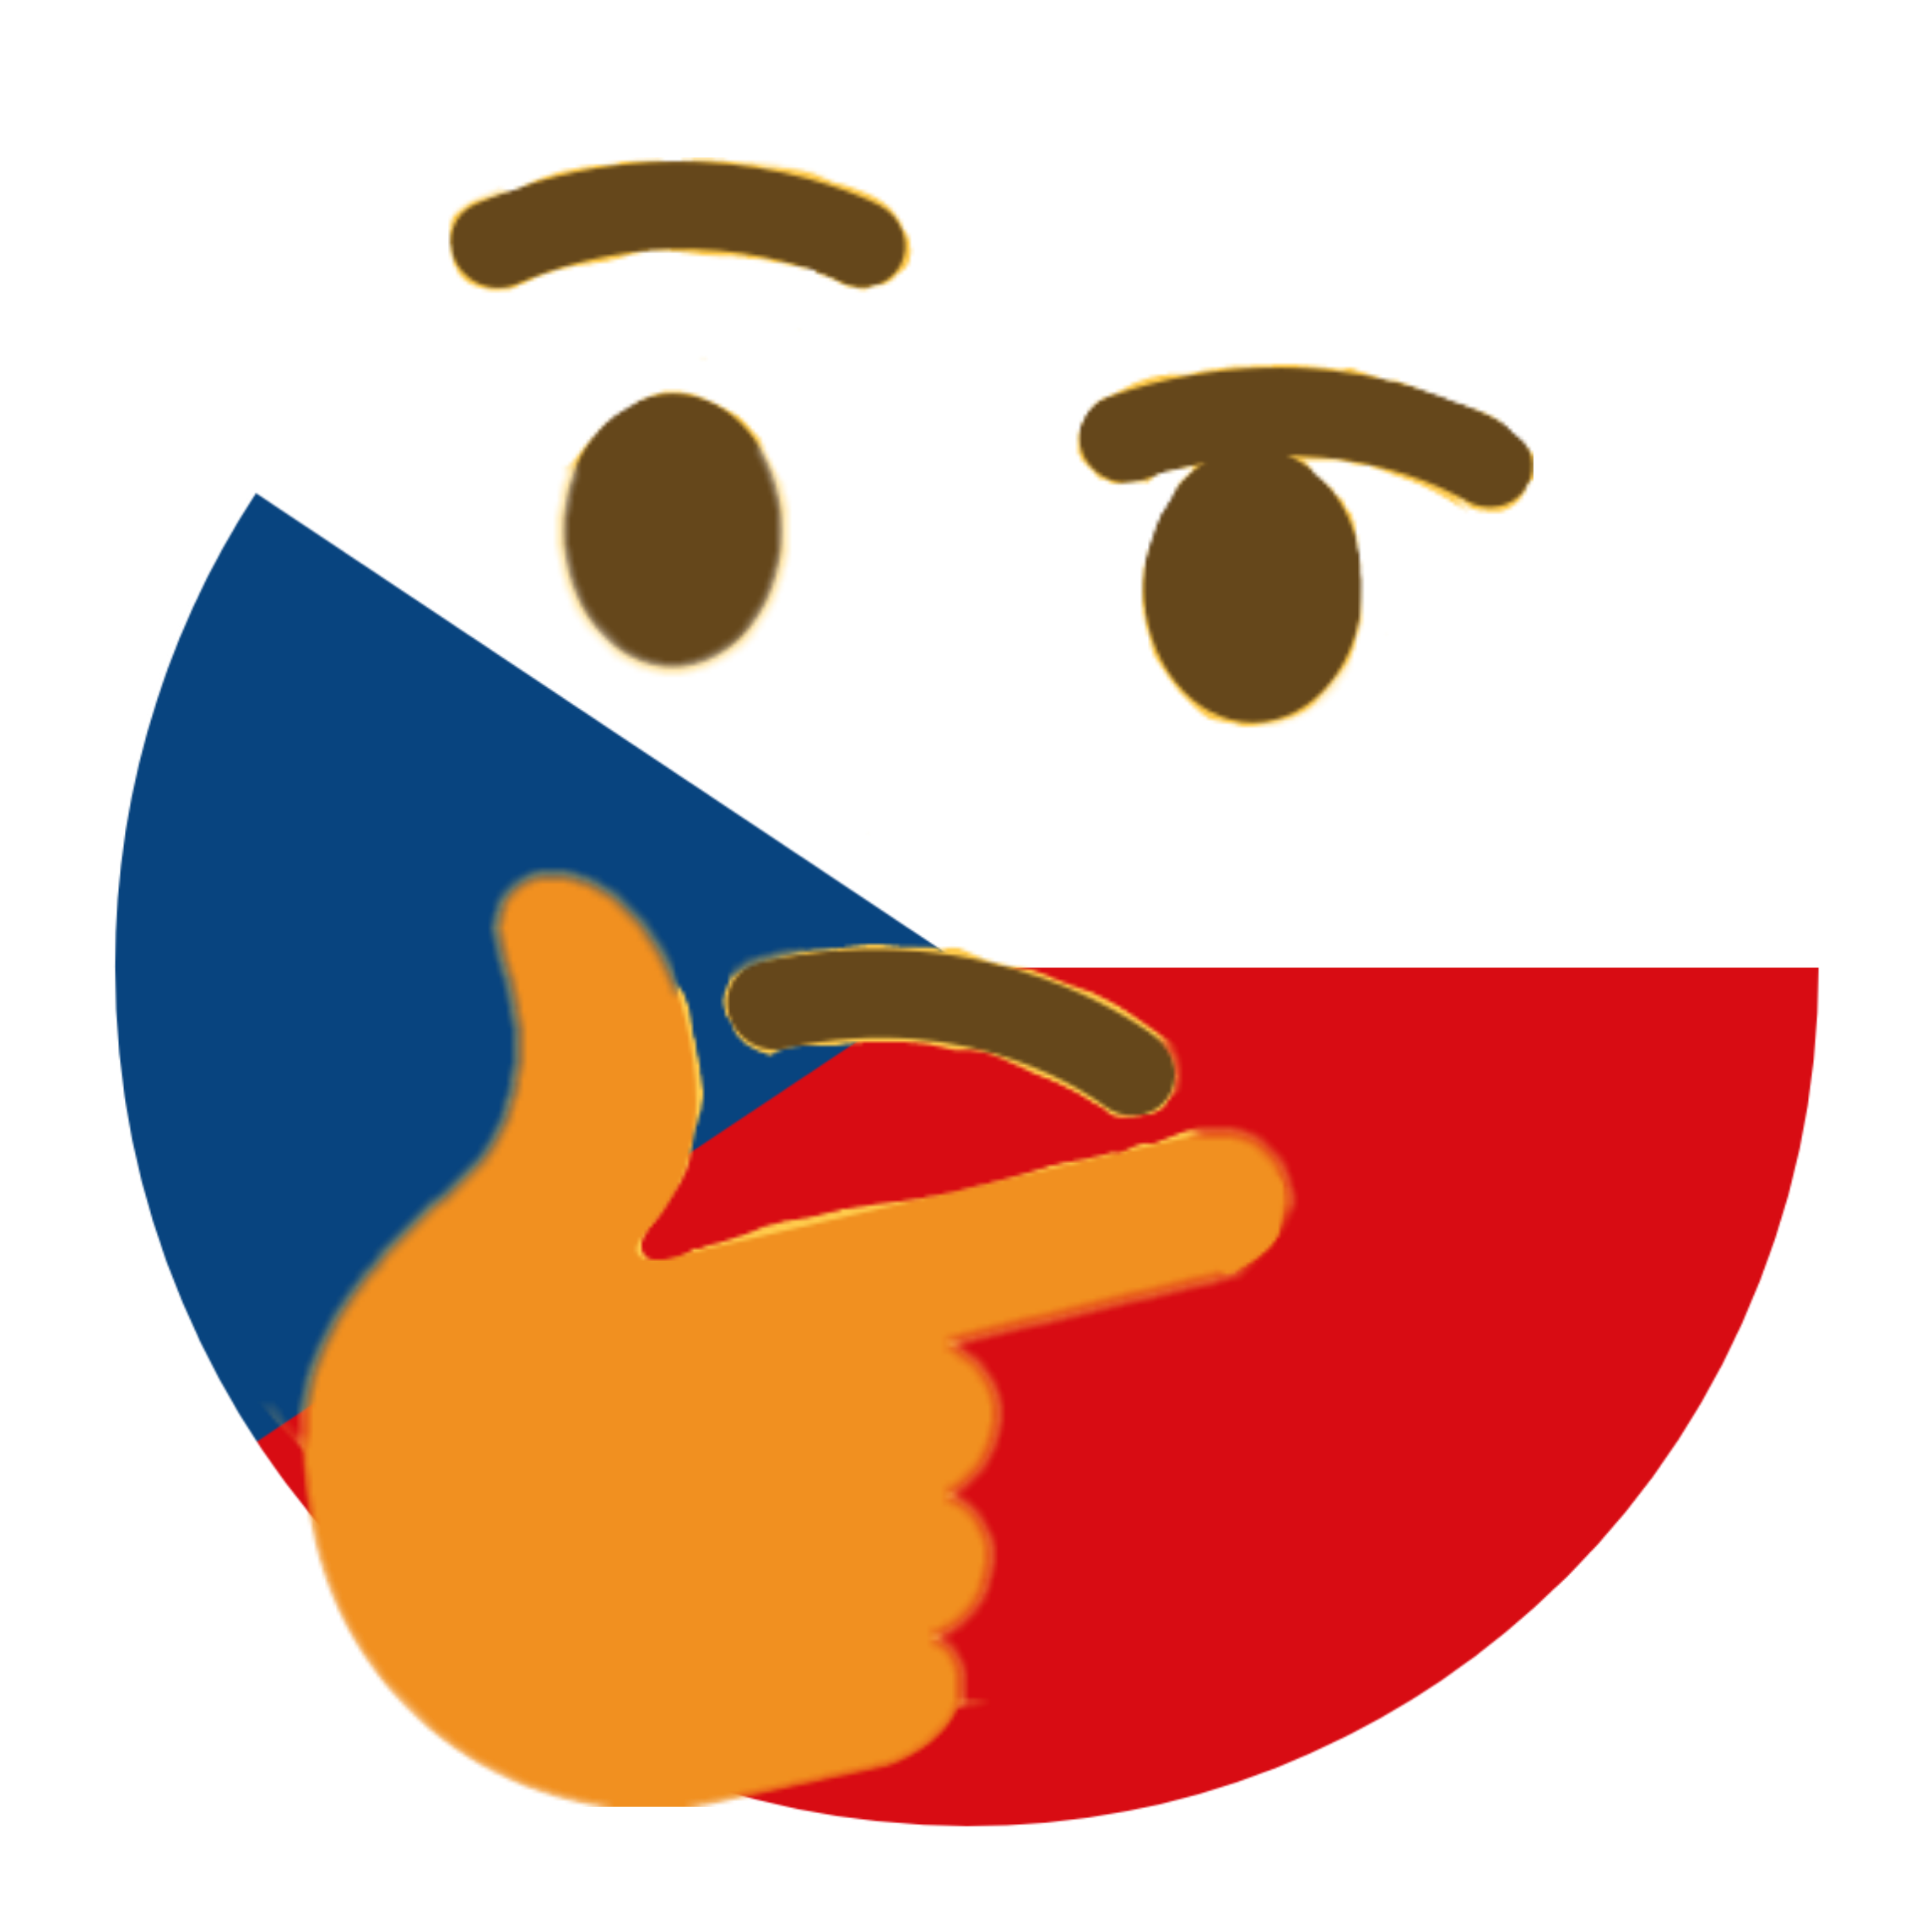 thinkcz Discord Emoji